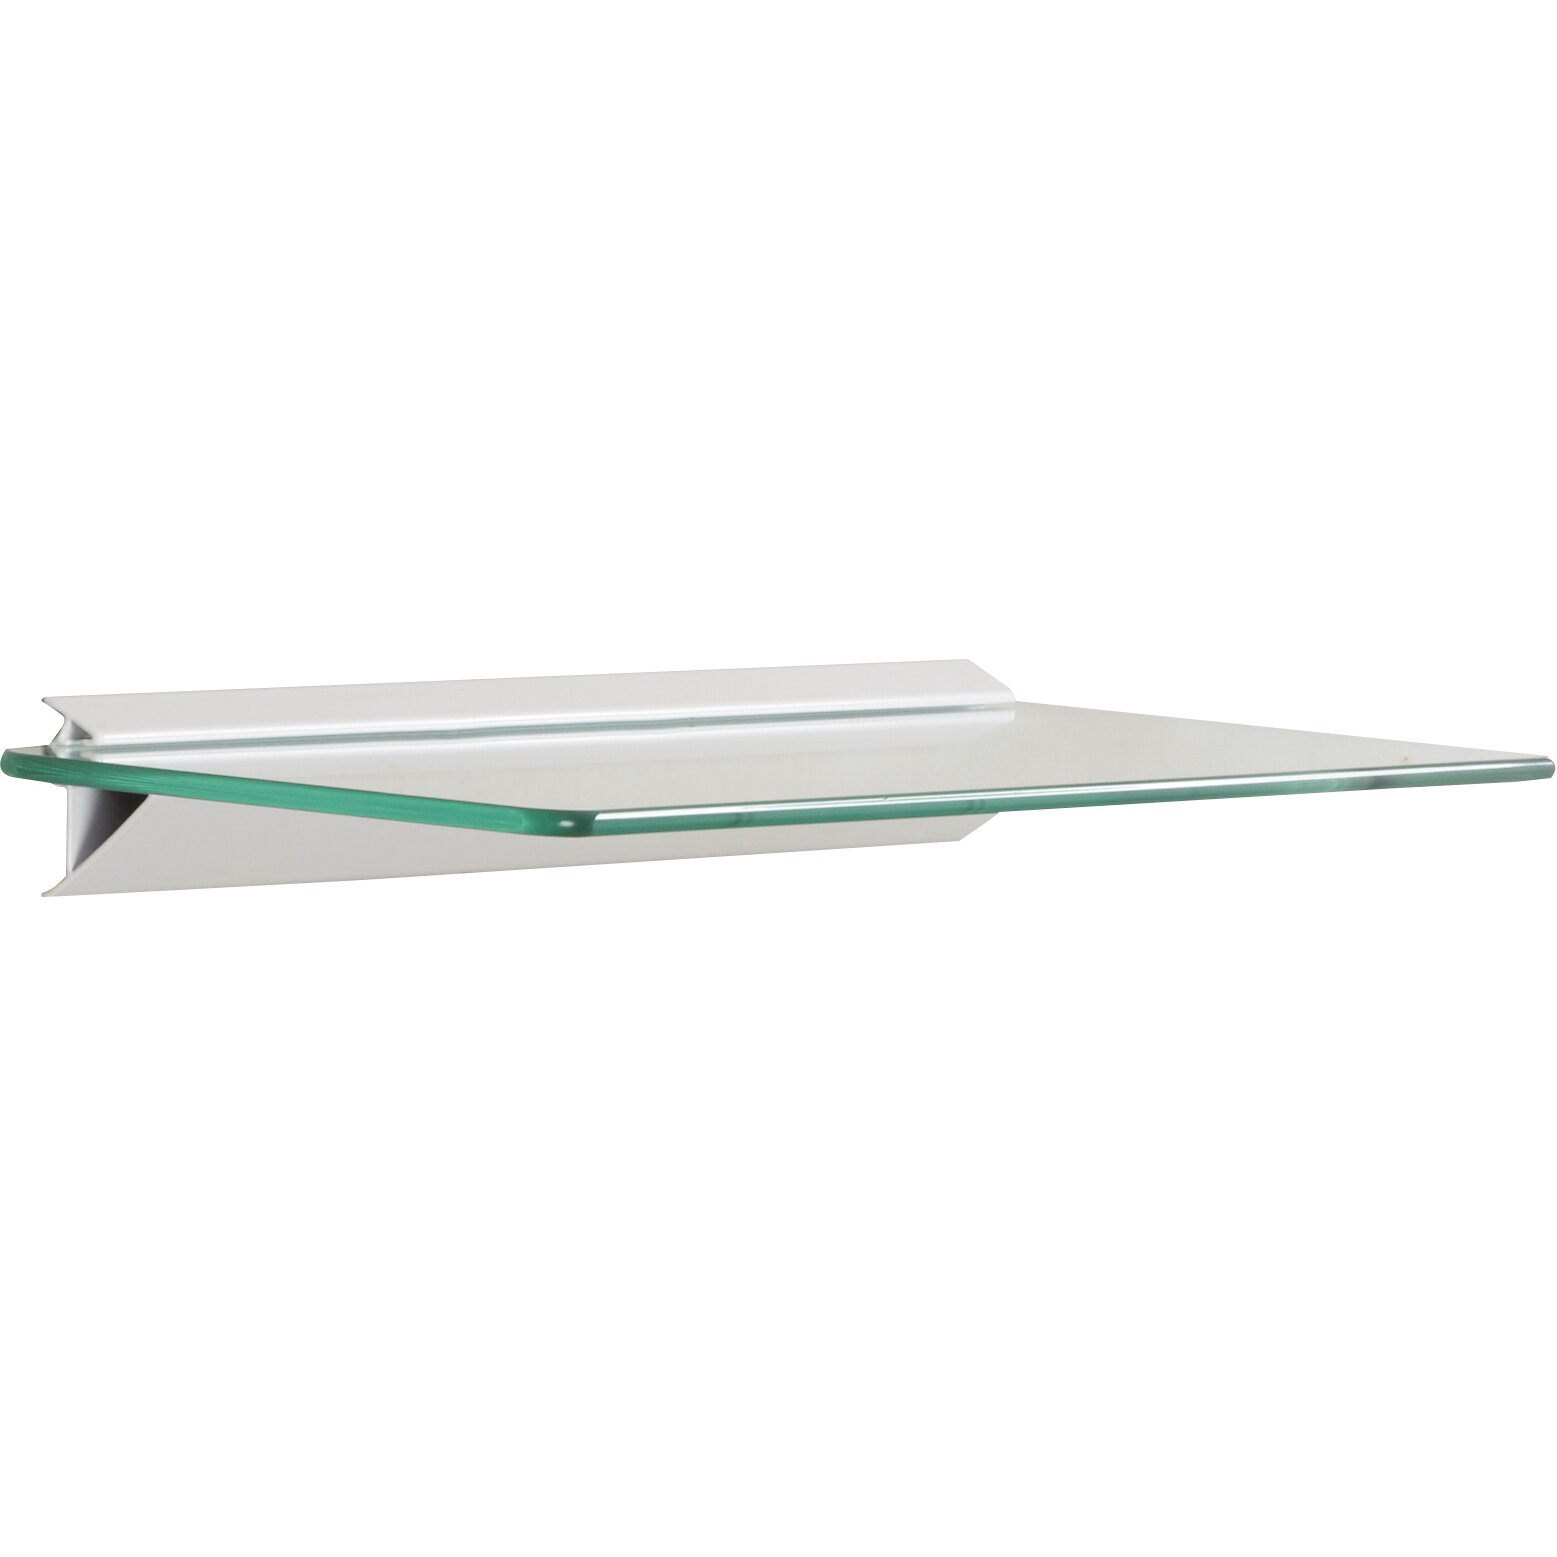 Wade Logan Glass Floating shelf amp Reviews Wayfair : Glass Shelf Kits WADL4189 from www.wayfair.com size 1557 x 1557 jpeg 63kB